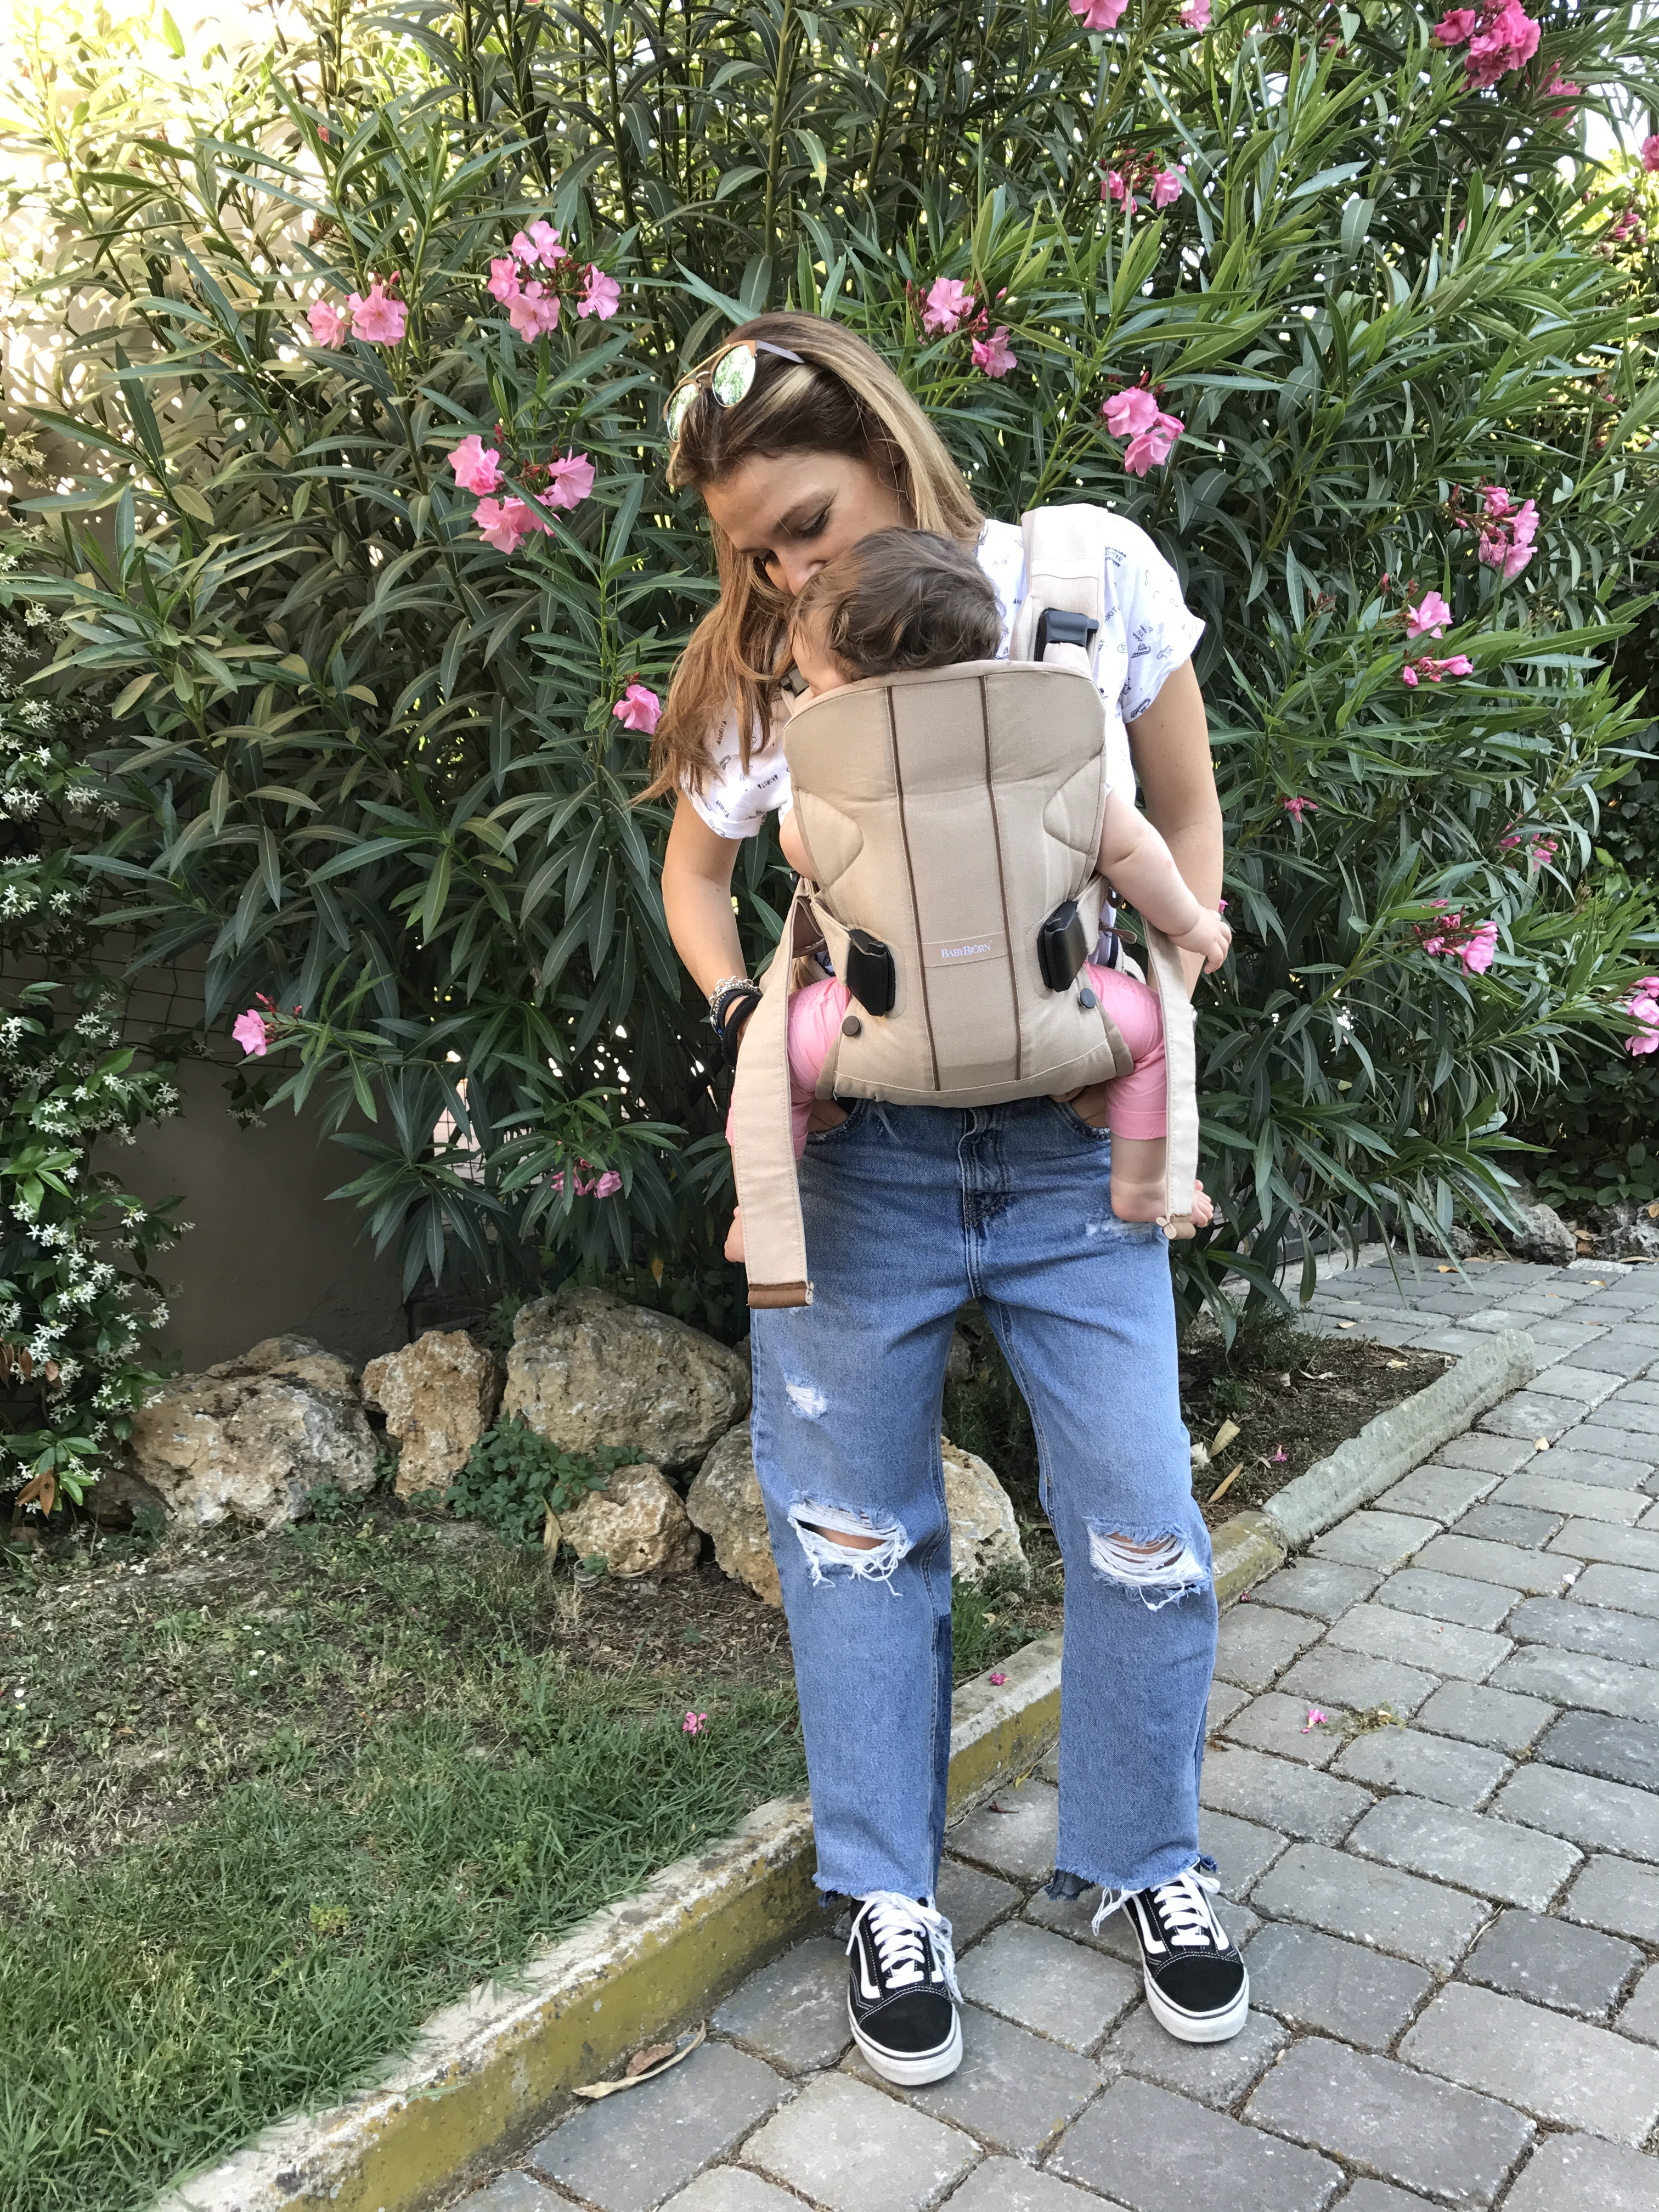 baby wearing babybjorn